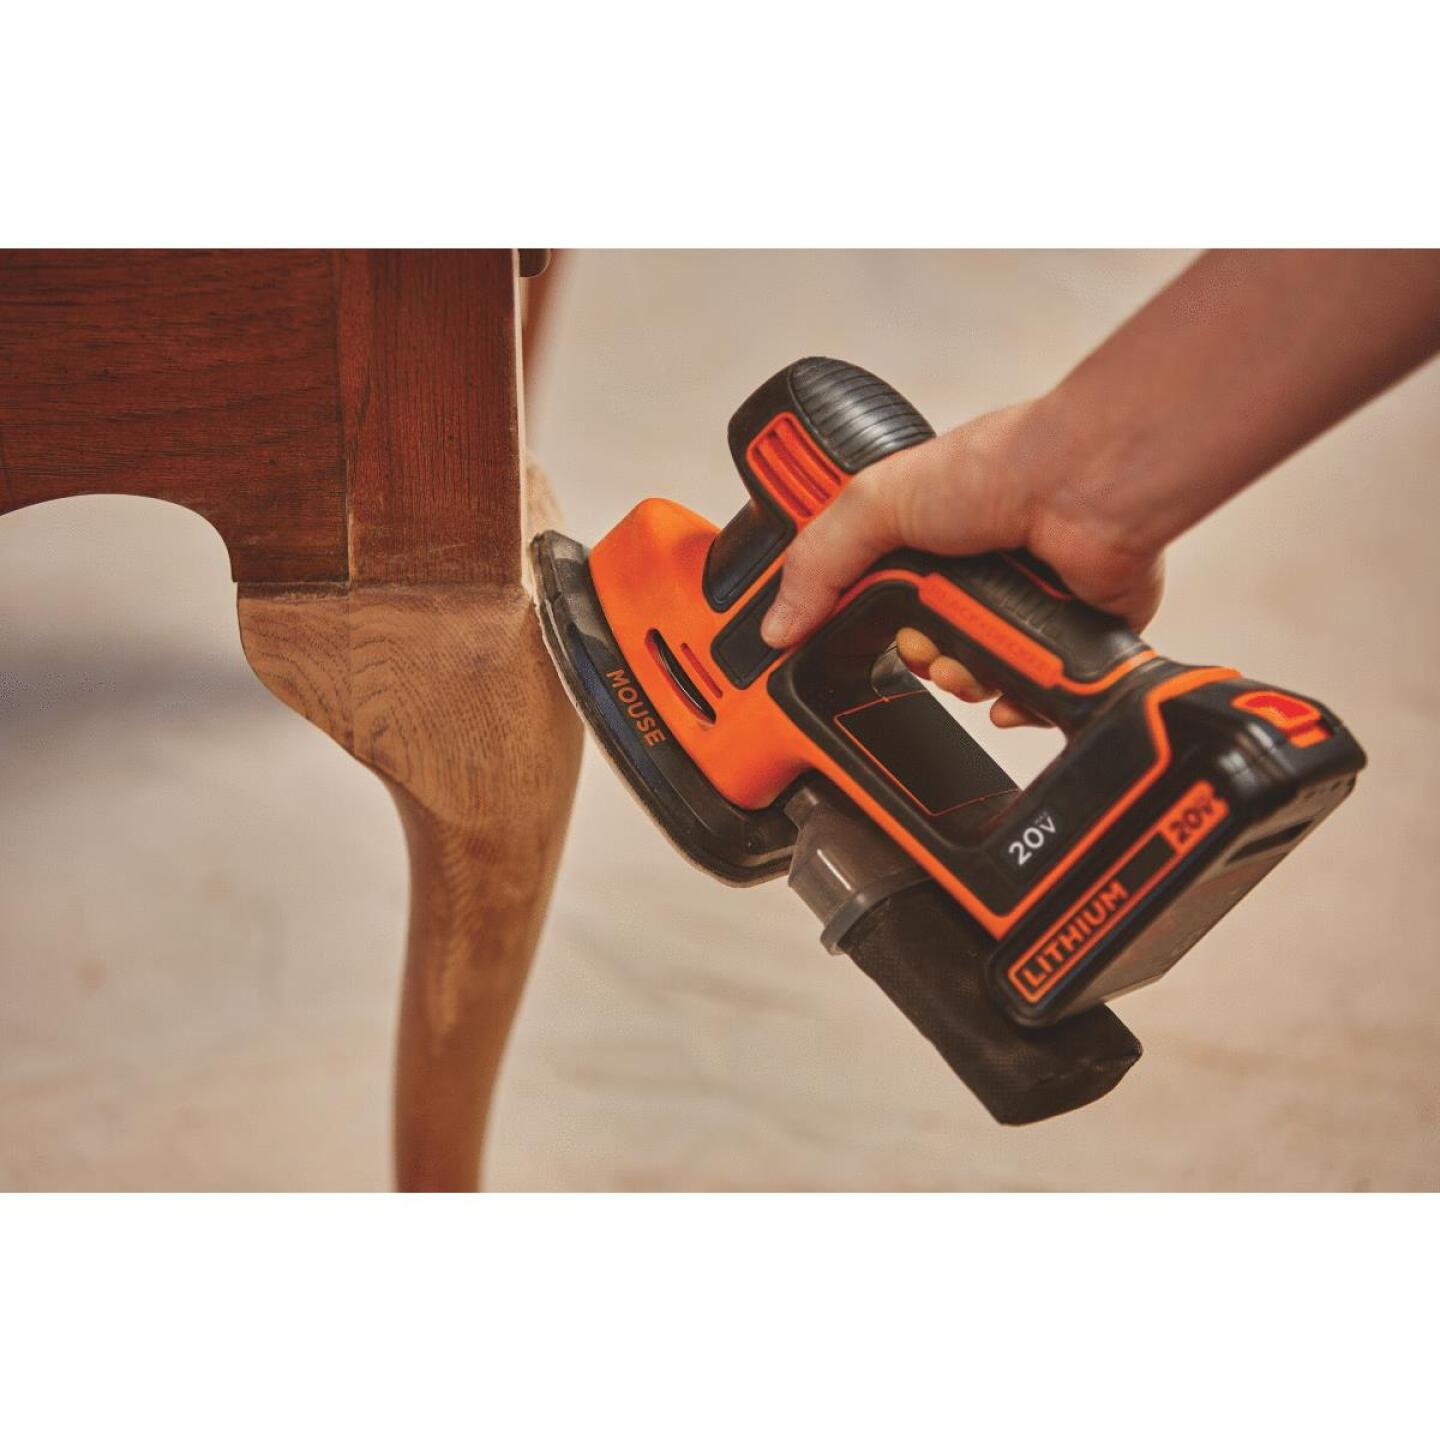 Black & Decker 20-Volt MAX Lithium-Ion Mouse Cordless Finish Sander Image 2